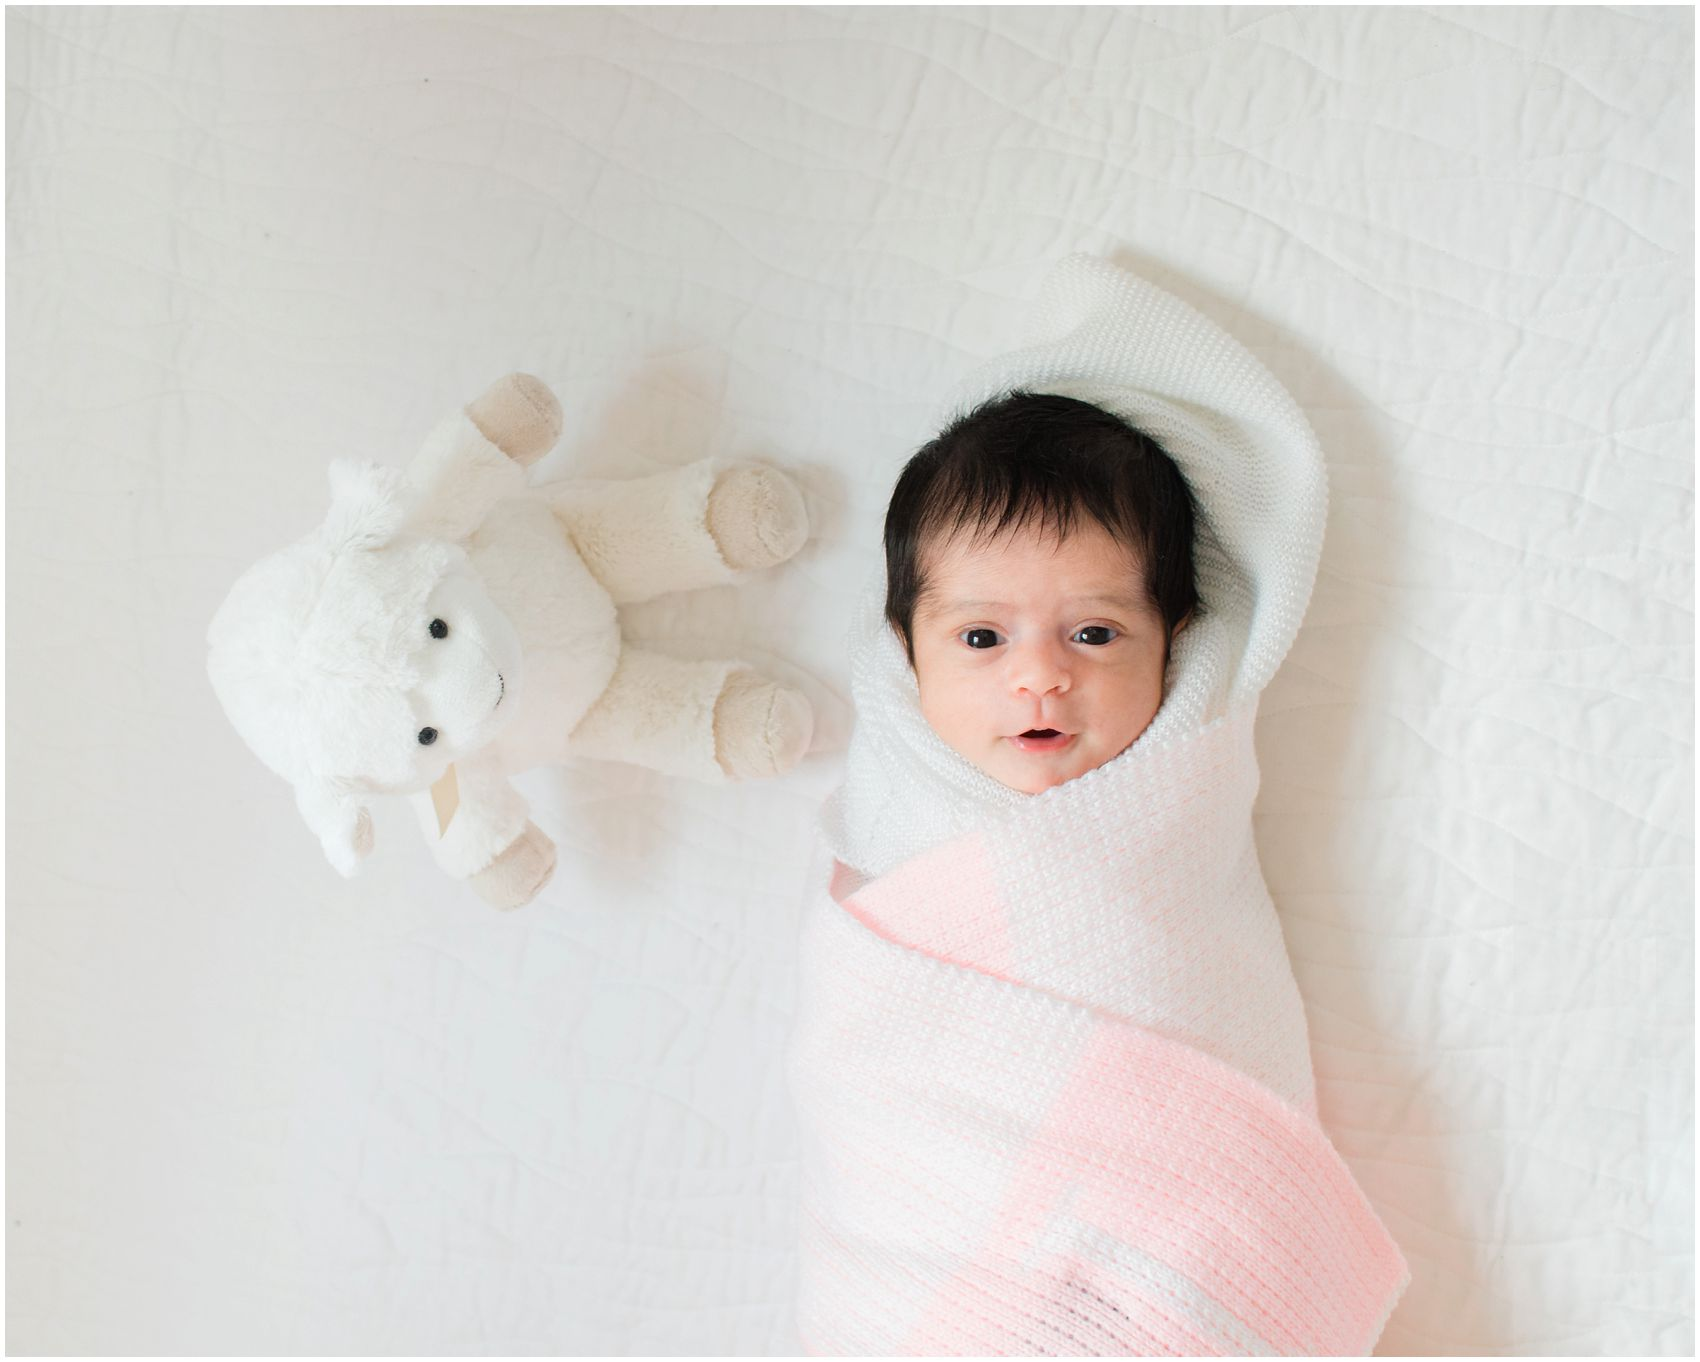 Best Newborn Photography with 3 weeks old baby girl has her eyes wide open next to a toy lamb